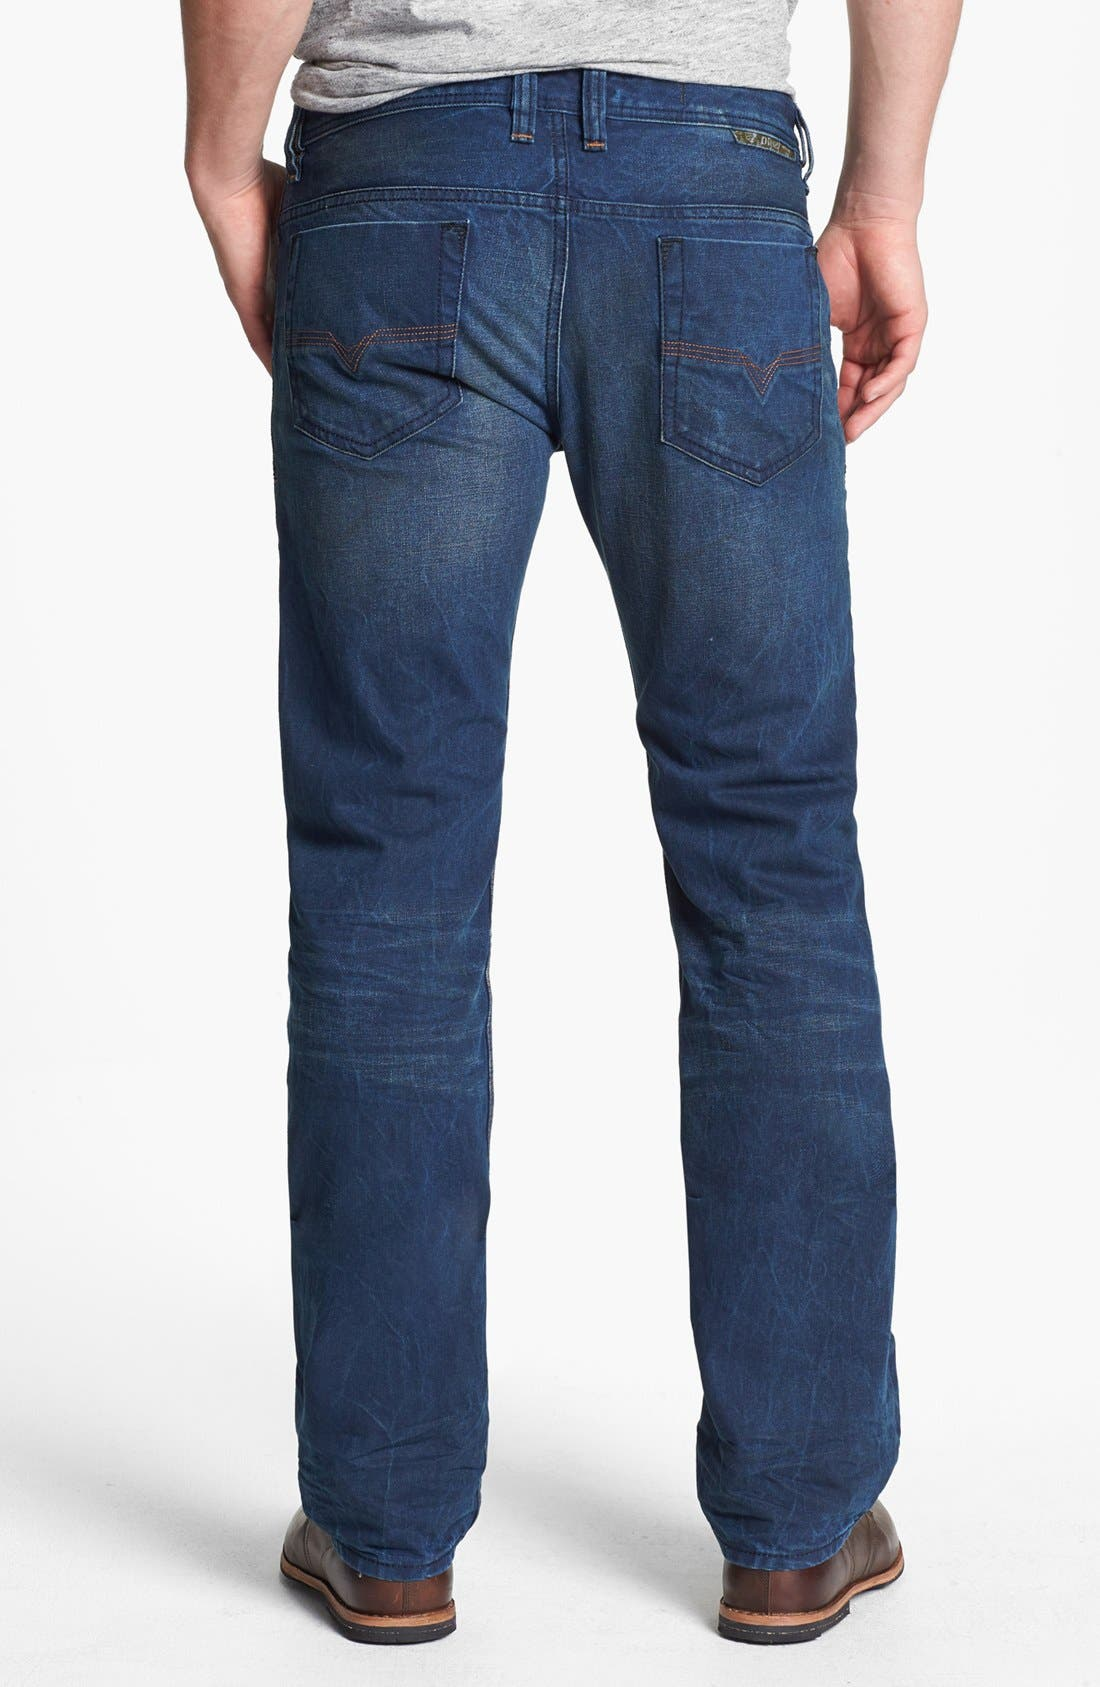 Alternate Image 1 Selected - DIESEL® 'Safado' Slim Fit Jeans (0815A)